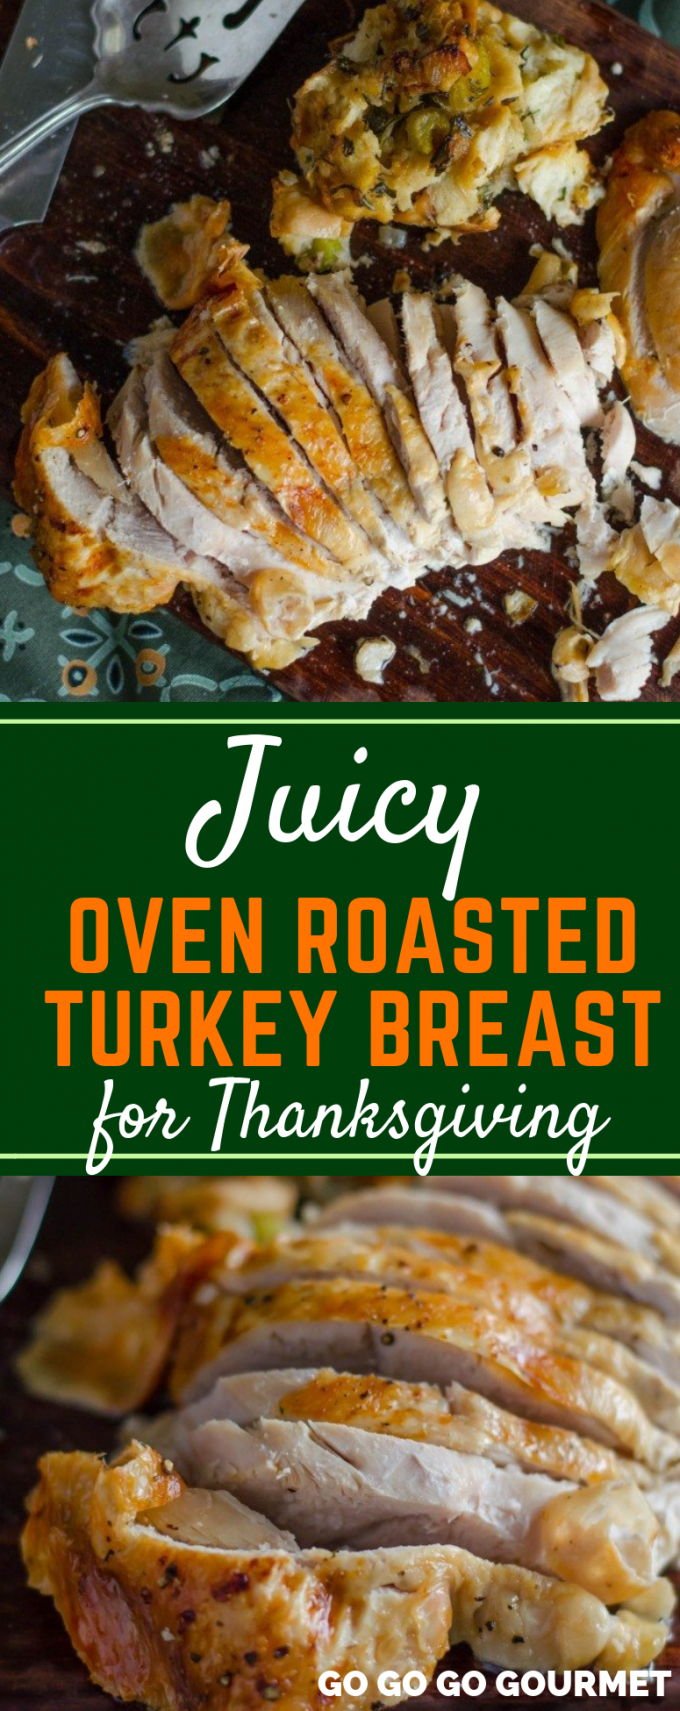 Whether boneless or bone in, this juicy Oven Roasted Turkey Breast recipe is perfect for Thanksgiving! You will never need to know how to cook turkey any other way! The leftovers make for delicious and easy sandwiches, too! #gogogogourmet #ovenroastedturkeybreast #thanksgivingrecipes #thanksgivingturkey #juicyturkeyrecipes via @gogogogourmet